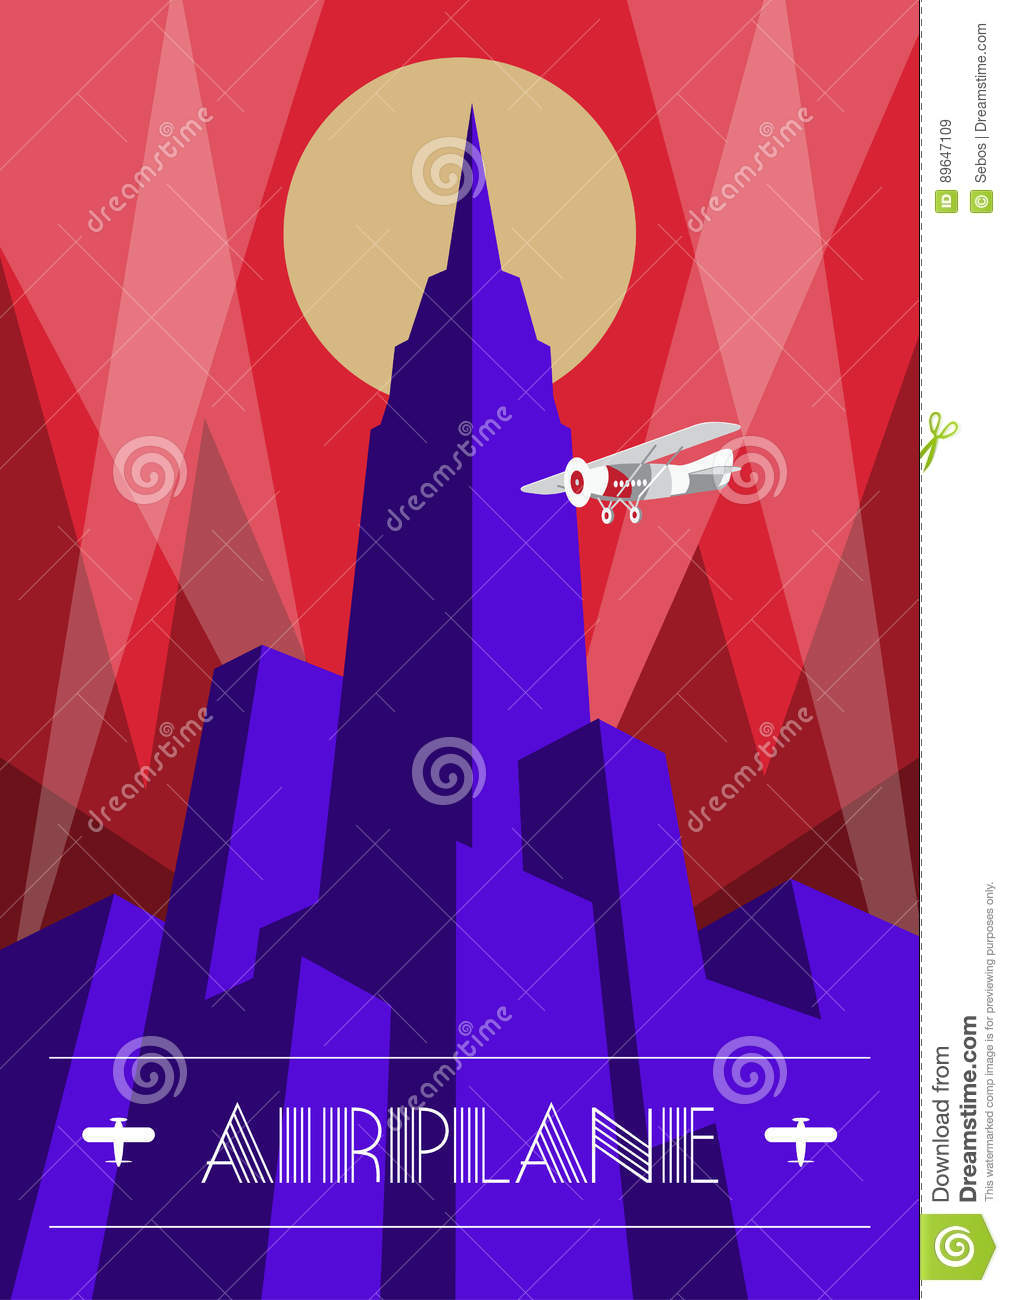 Skyscraper and airplane poster in art deco style vintage for Style retro deco